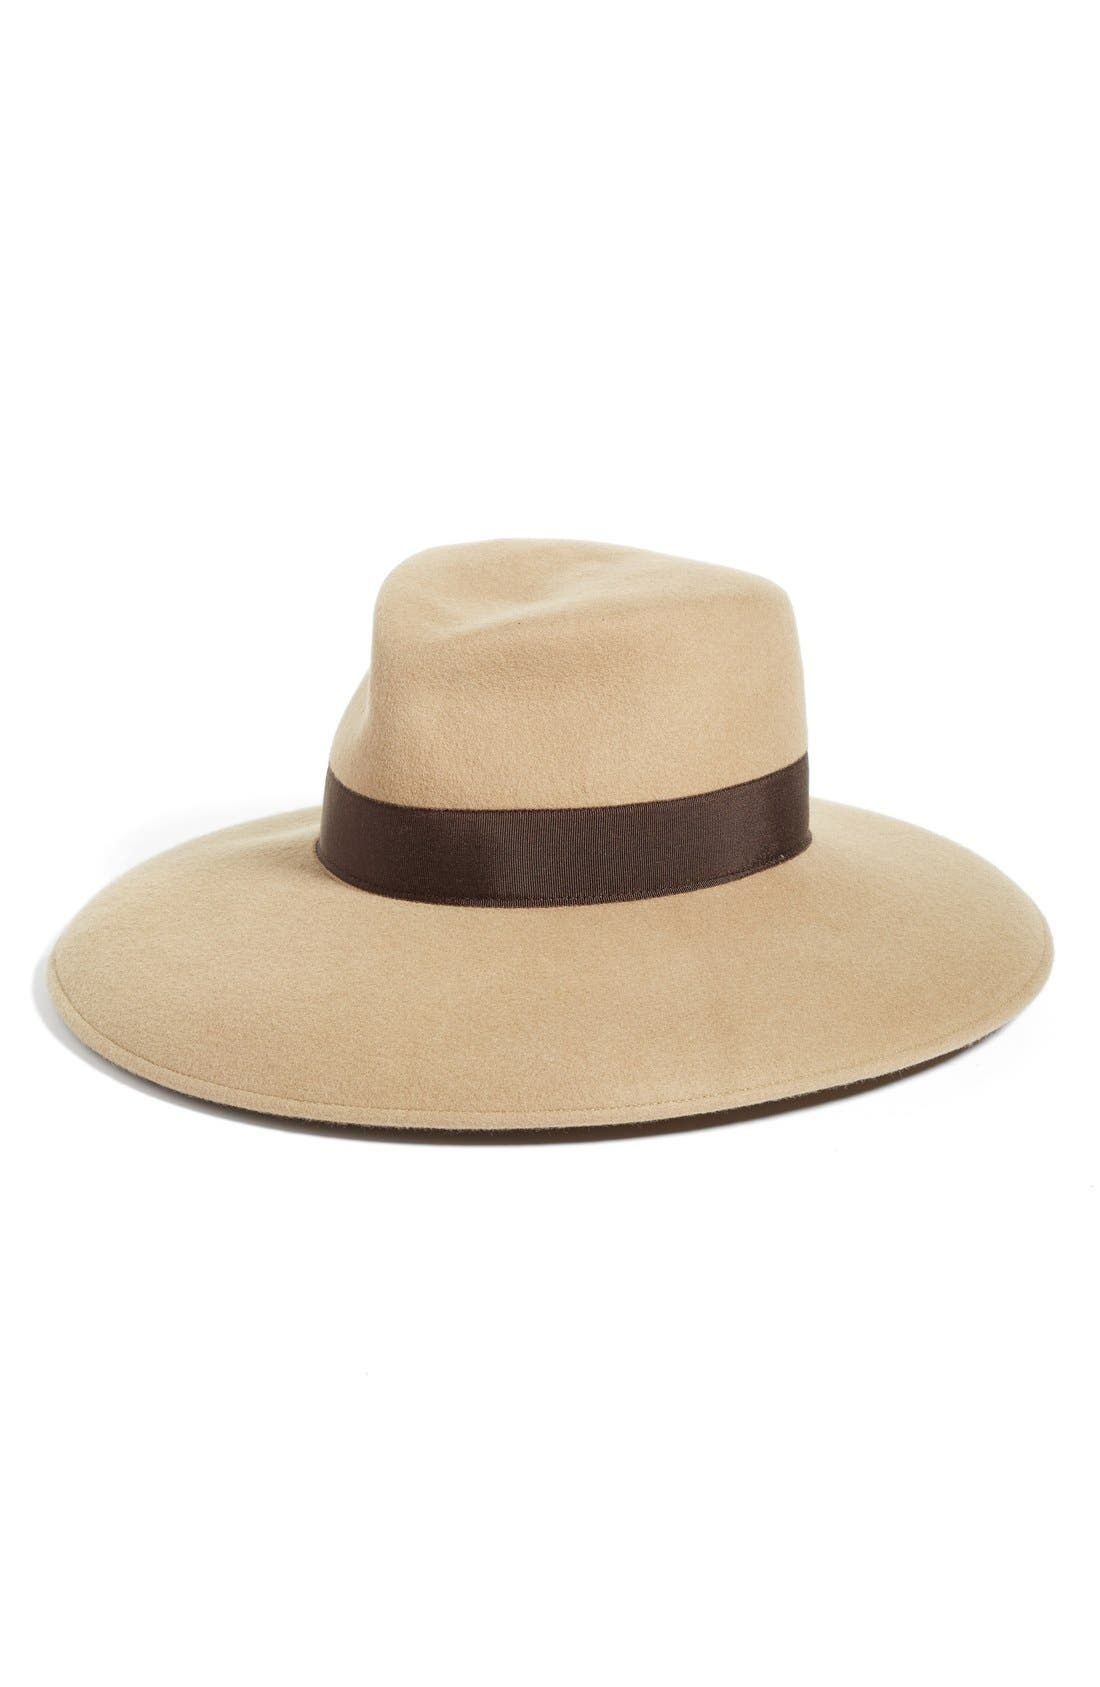 Camille Wool Floppy Hat,                         Main,                         color, Camel/ Brown